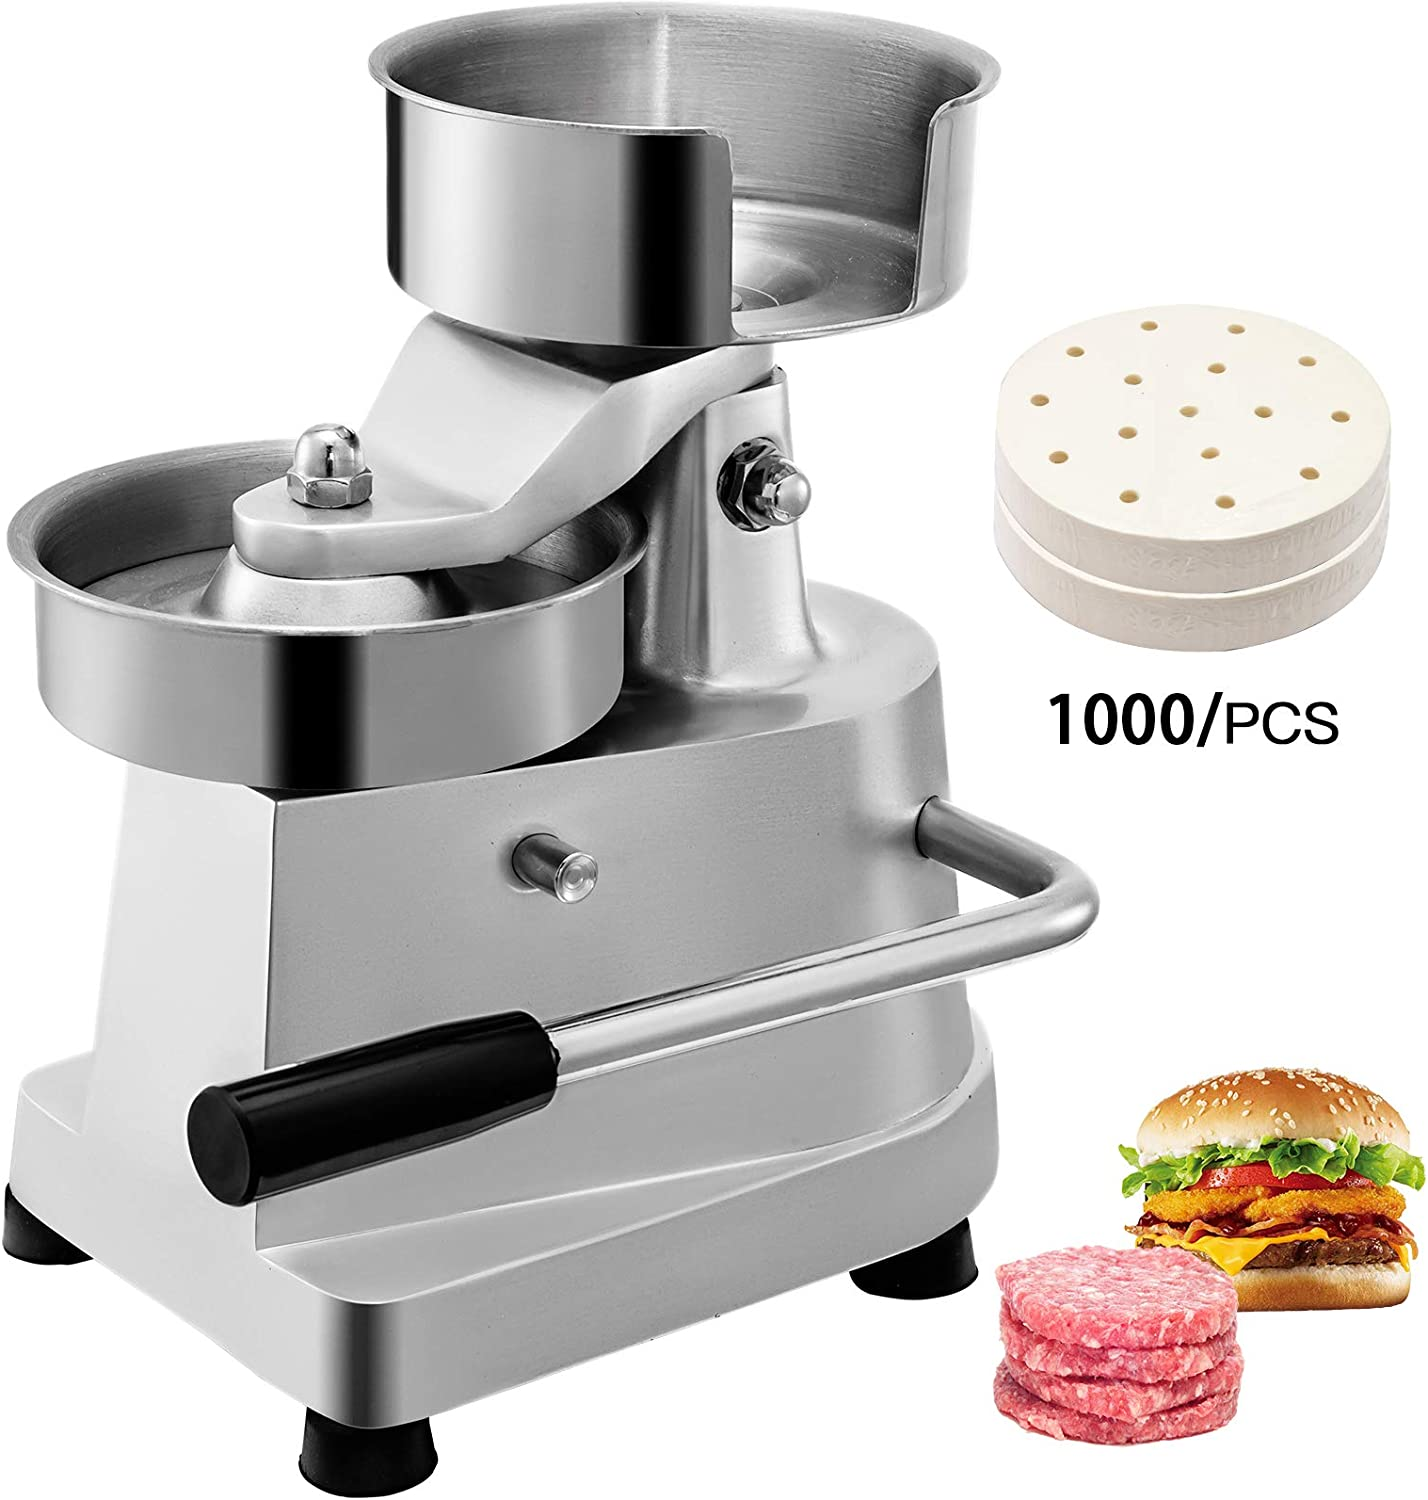 VBENLEM Commercial Hamburger Patty Maker 150mm/6inch Stainless Steel Burger Press Heavy Duty Beef Meat Forming Processor with 1000Pcs Papers, Sliver